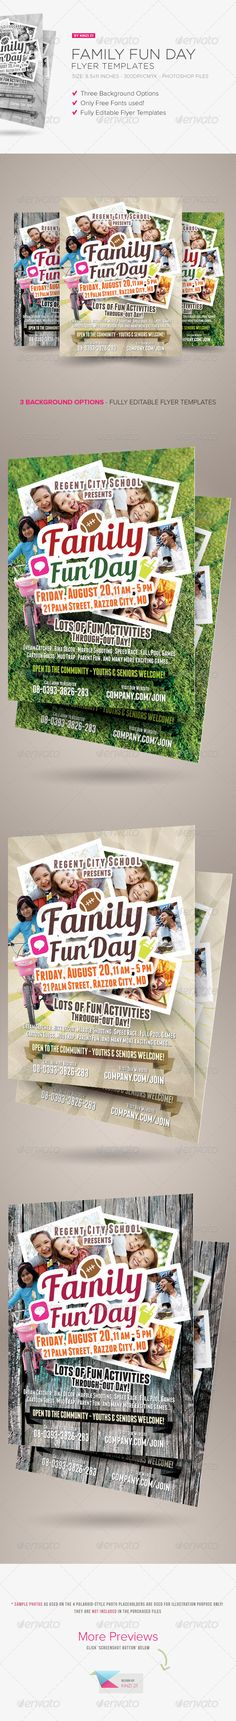 Family Fun Day Flyers are design templates created for sale on Graphic River. More info of the templates and how to get the sourcefiles can be found on this page: http://graphicriver.net/item/family-fun-day-flyers/8775905?r=kinzi21